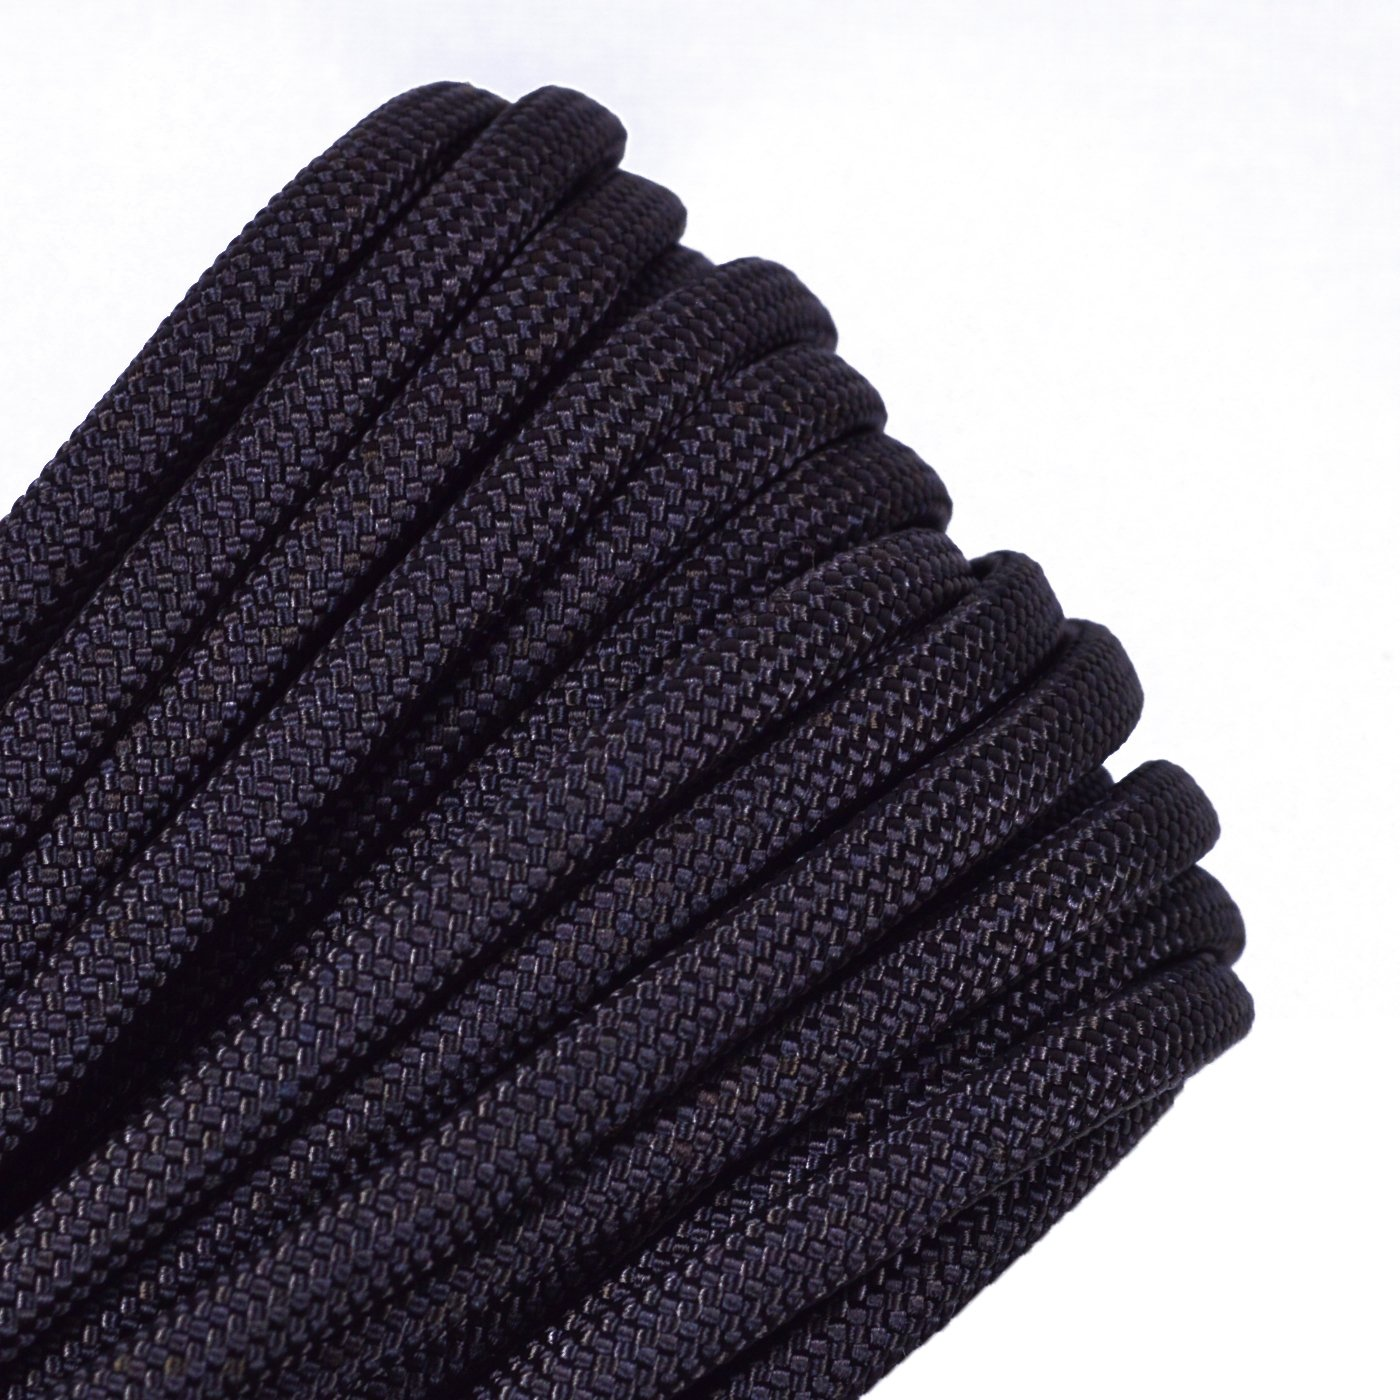 Solid Colors Paracord - Type III Parachute Cord - Acid Brown - 25 Feet by BoredParacord (Image #1)